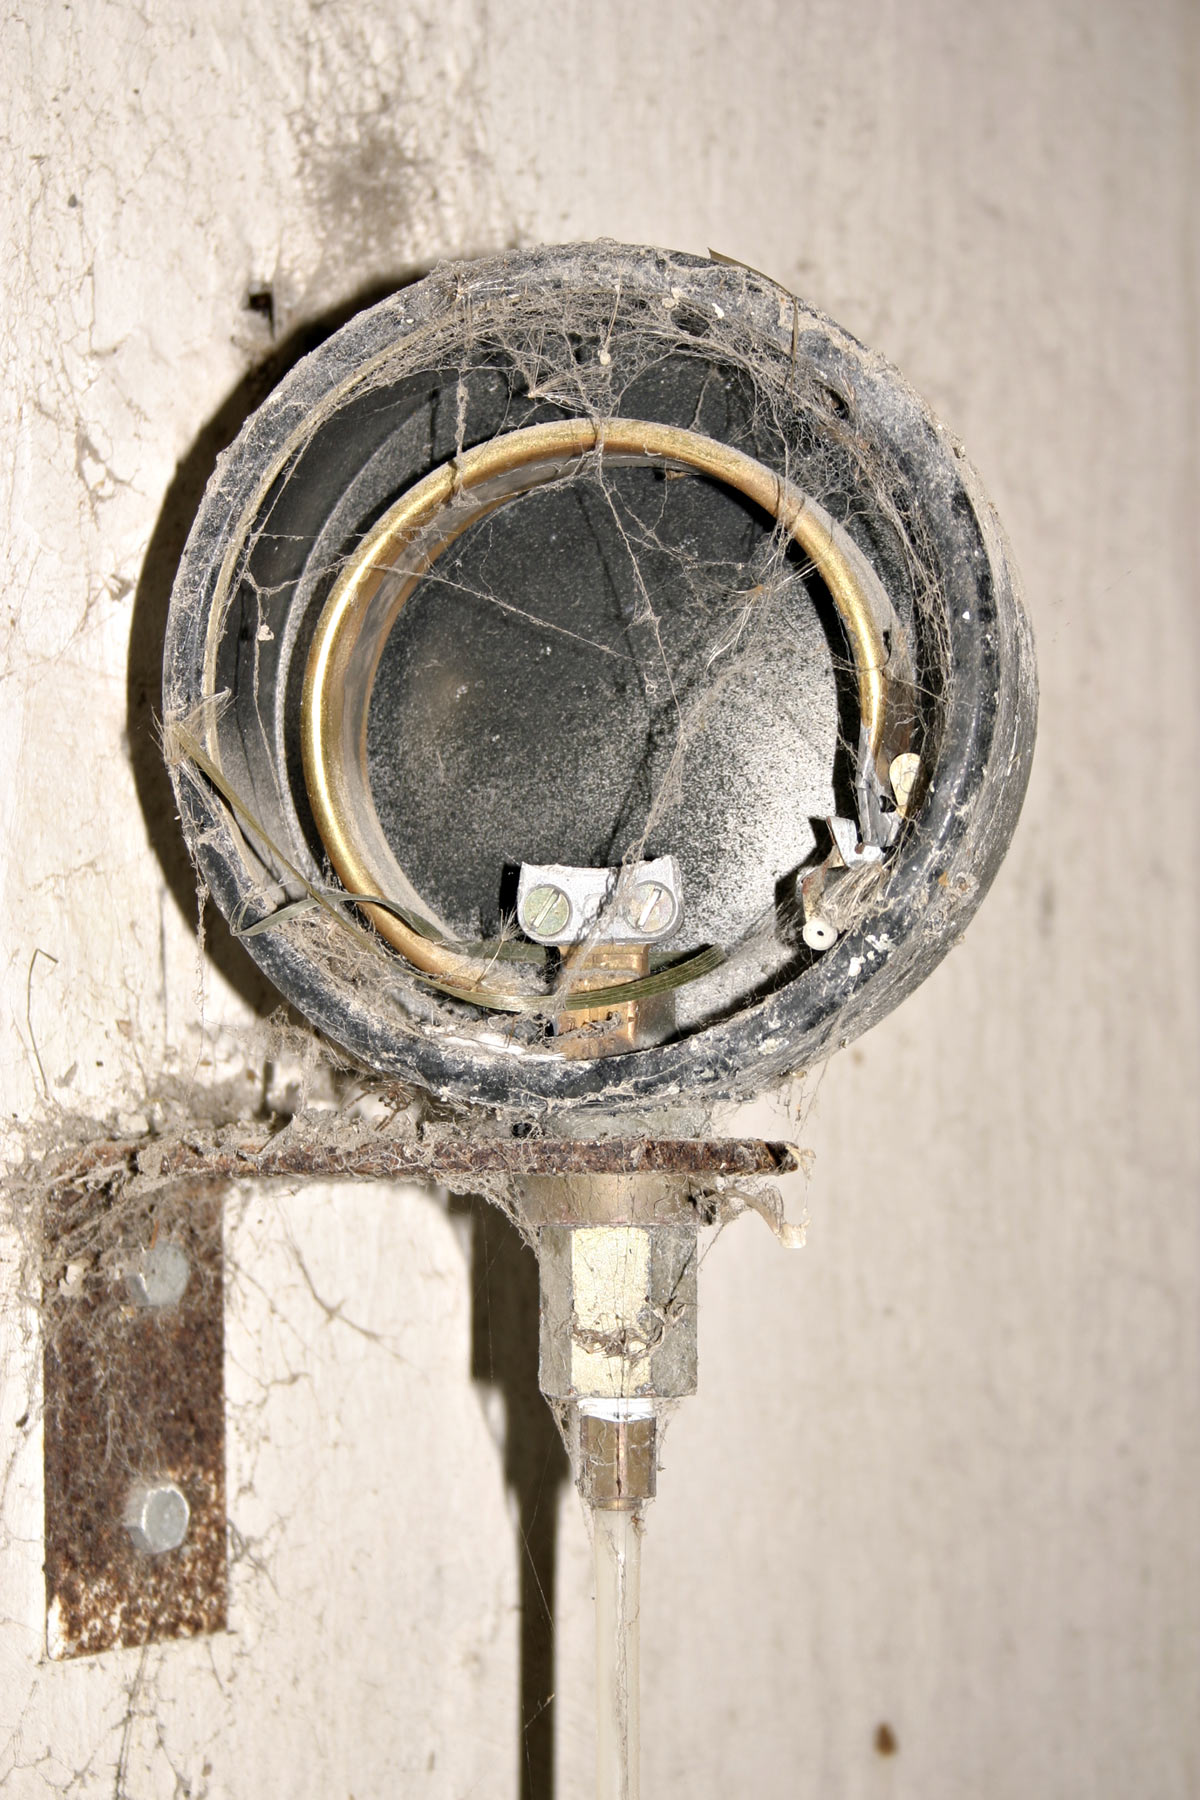 Fuse box, Old, Pipe, Rounded, Fuse, HQ Photo